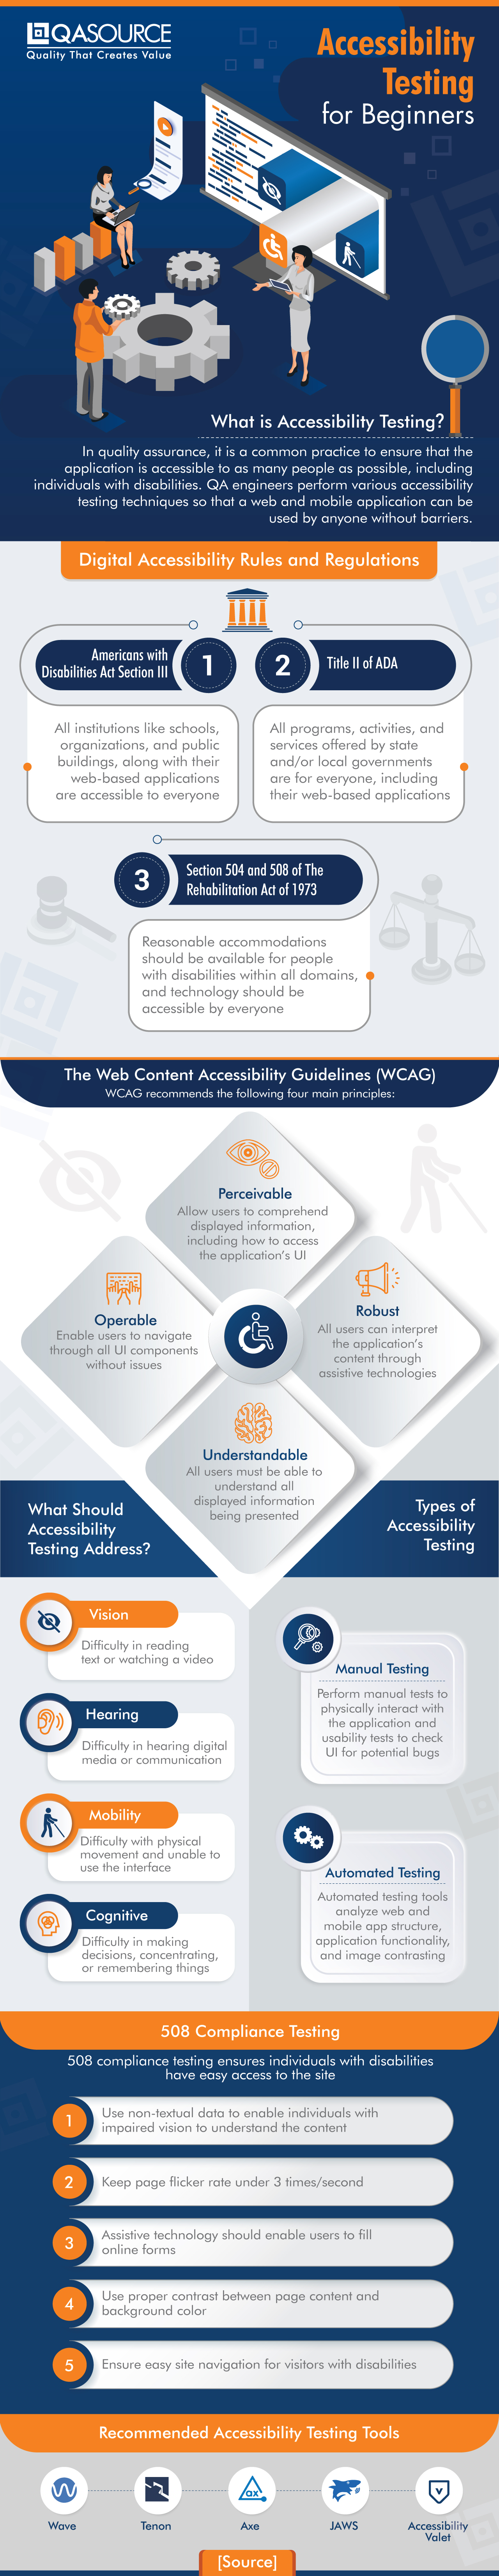 Accessibility Testing for Beginners (Infographic)